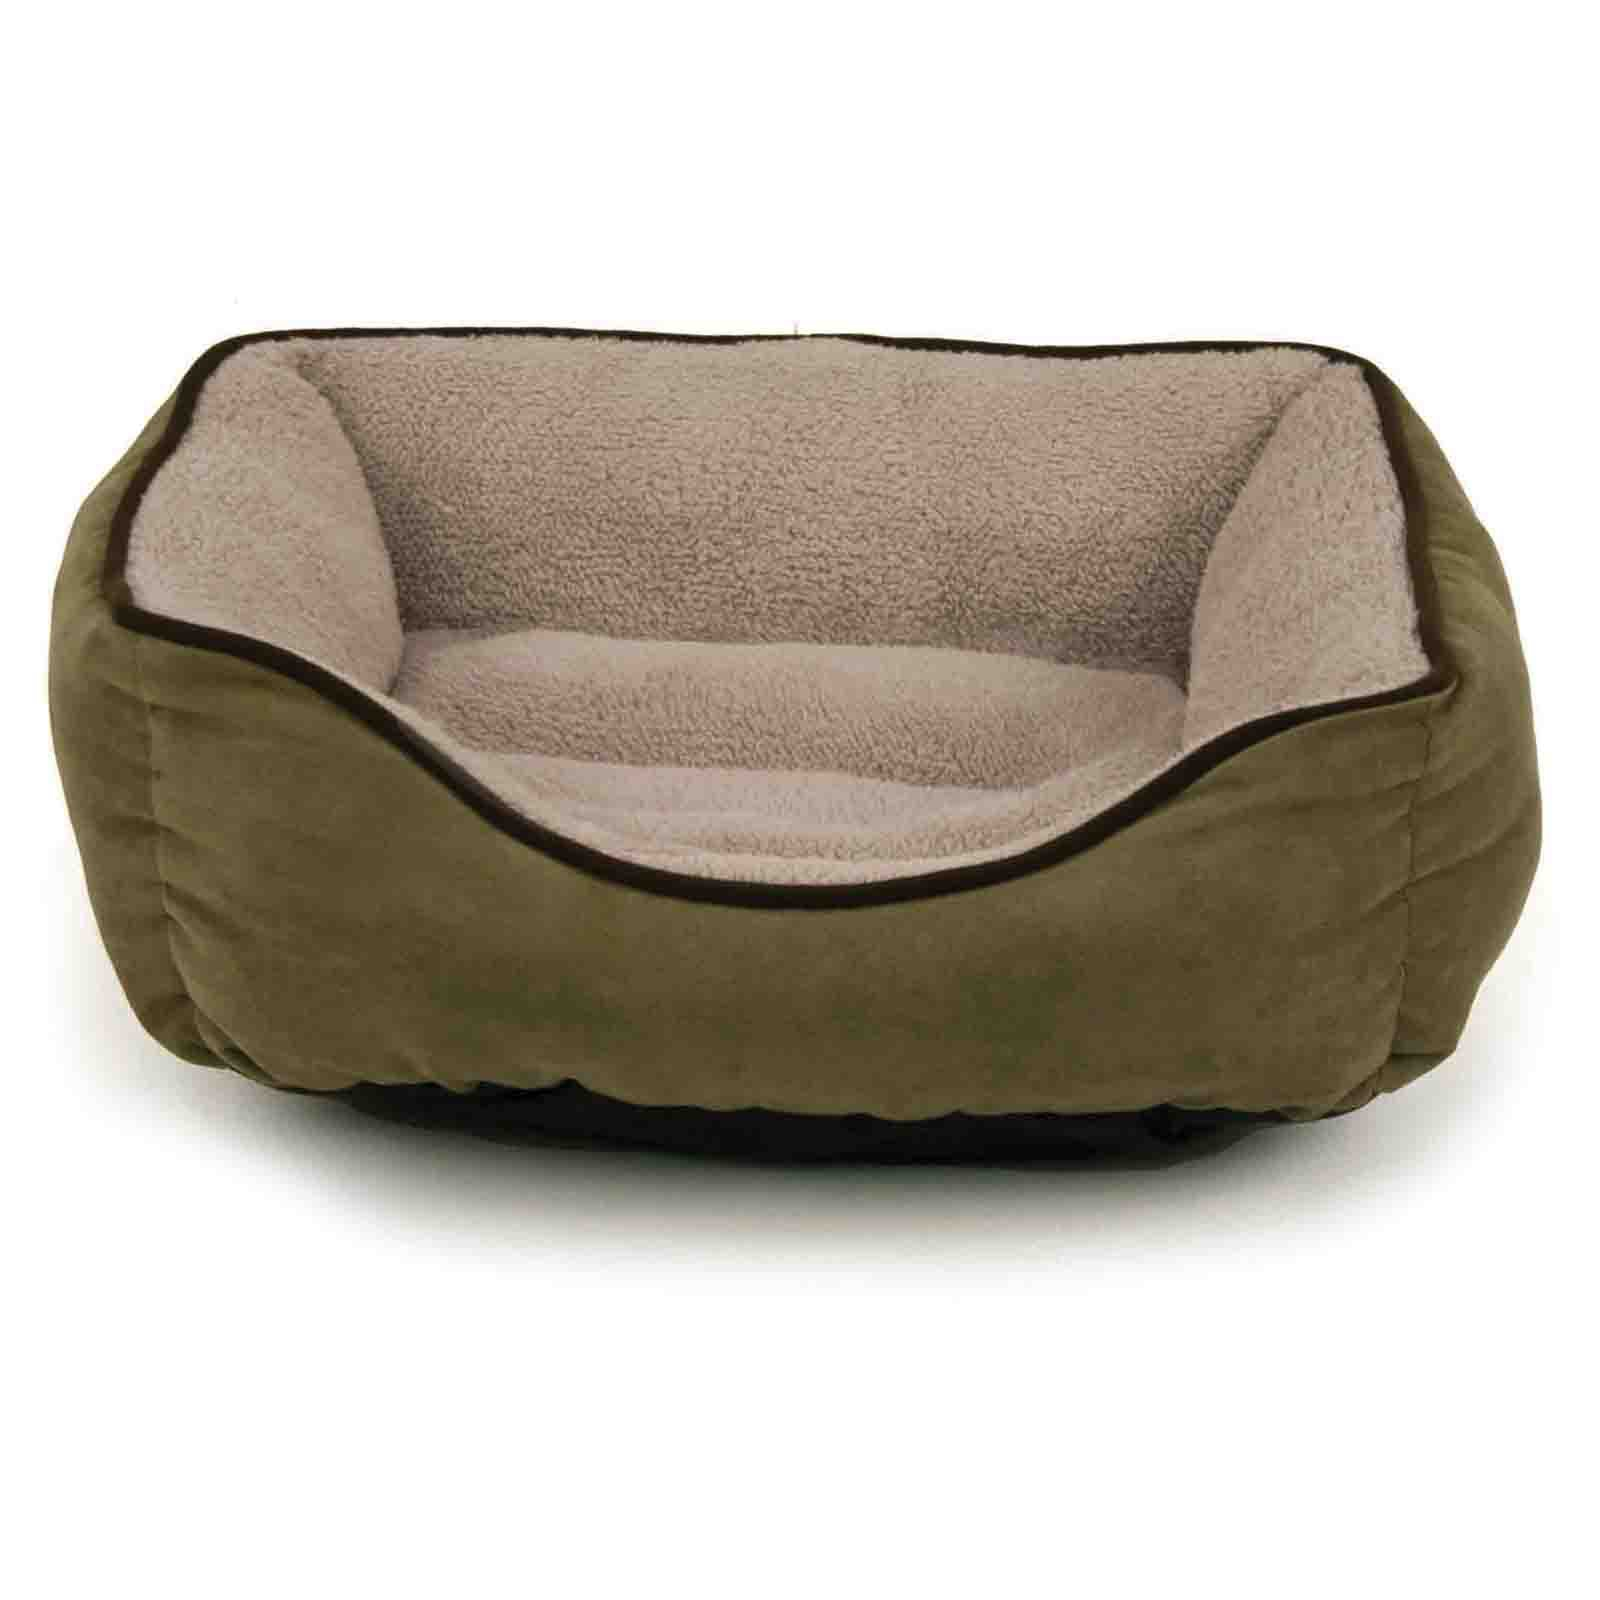 dallas manufacturing company extra thick orthopedic bed - 30l x